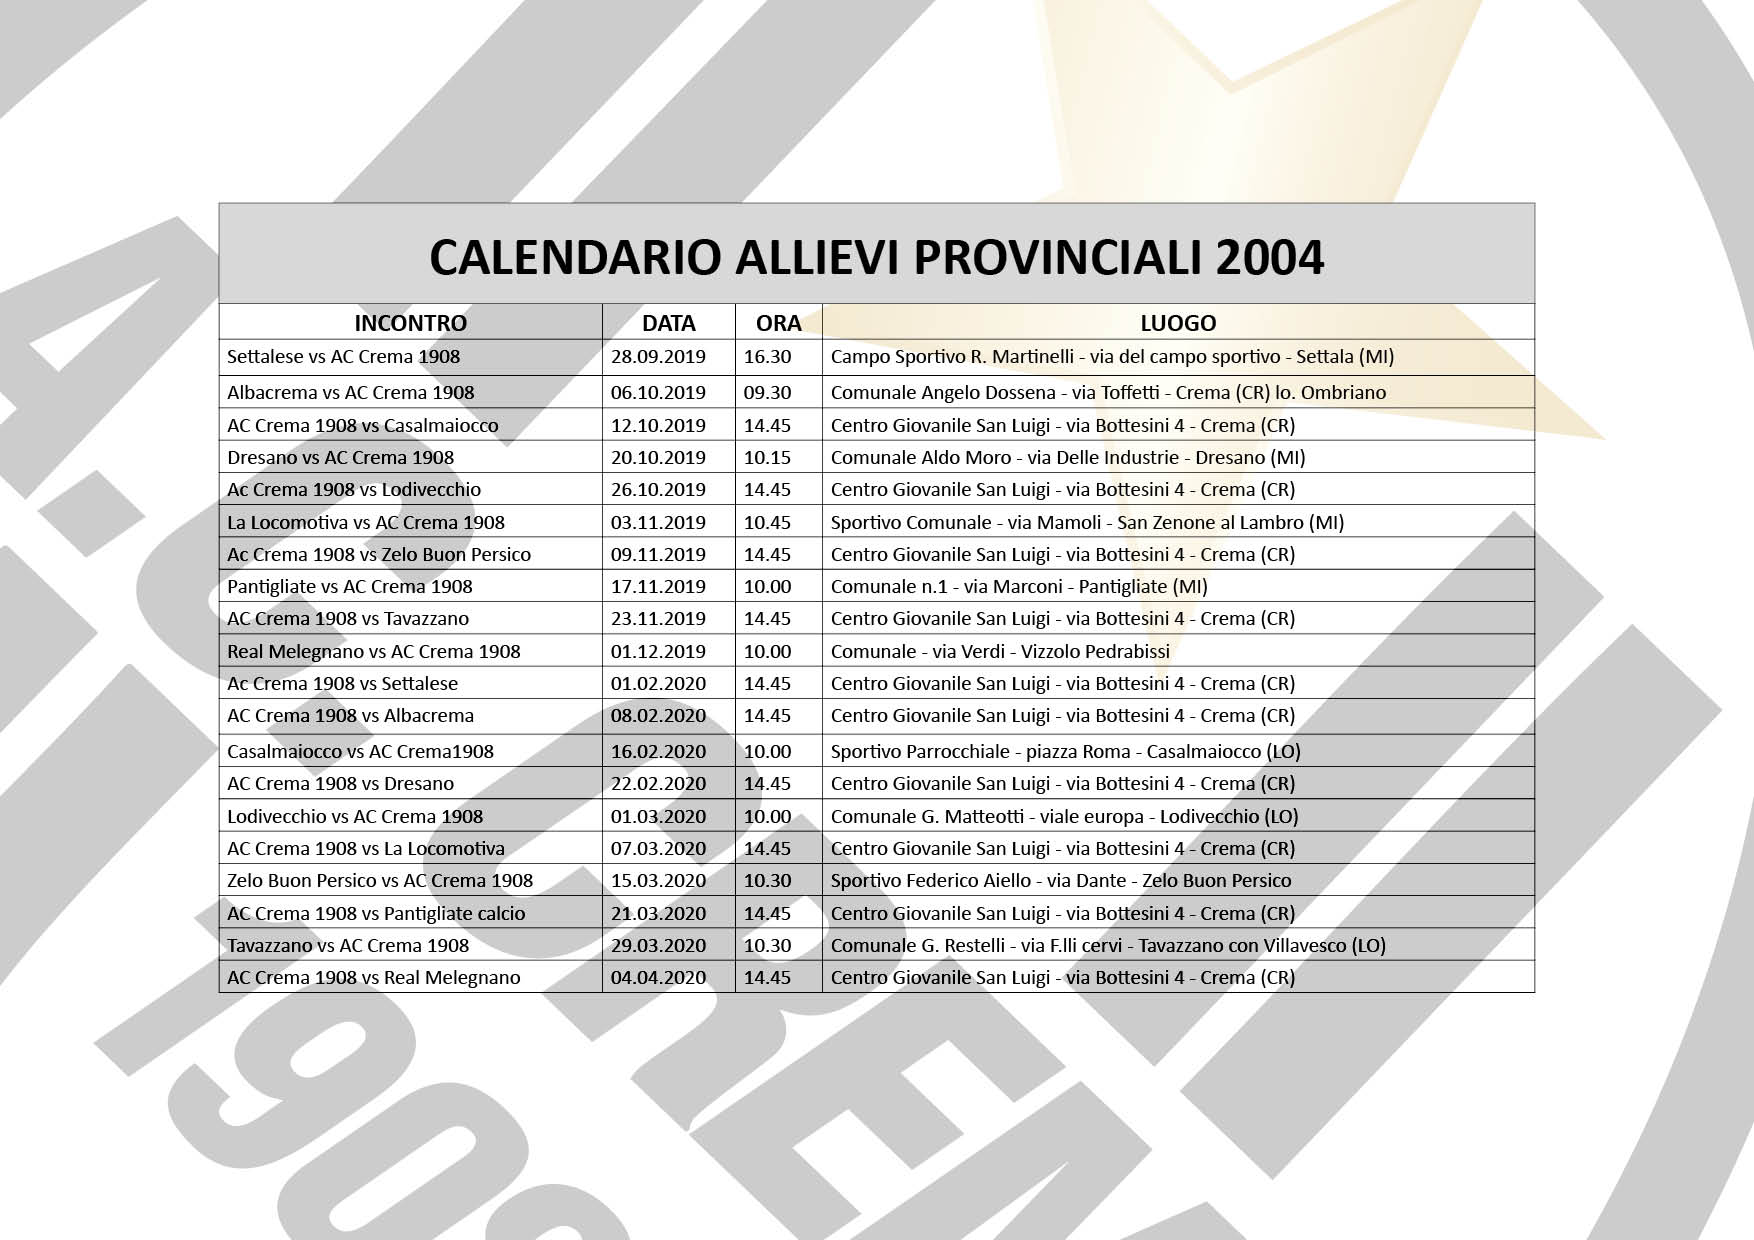 calendario allievi 2004